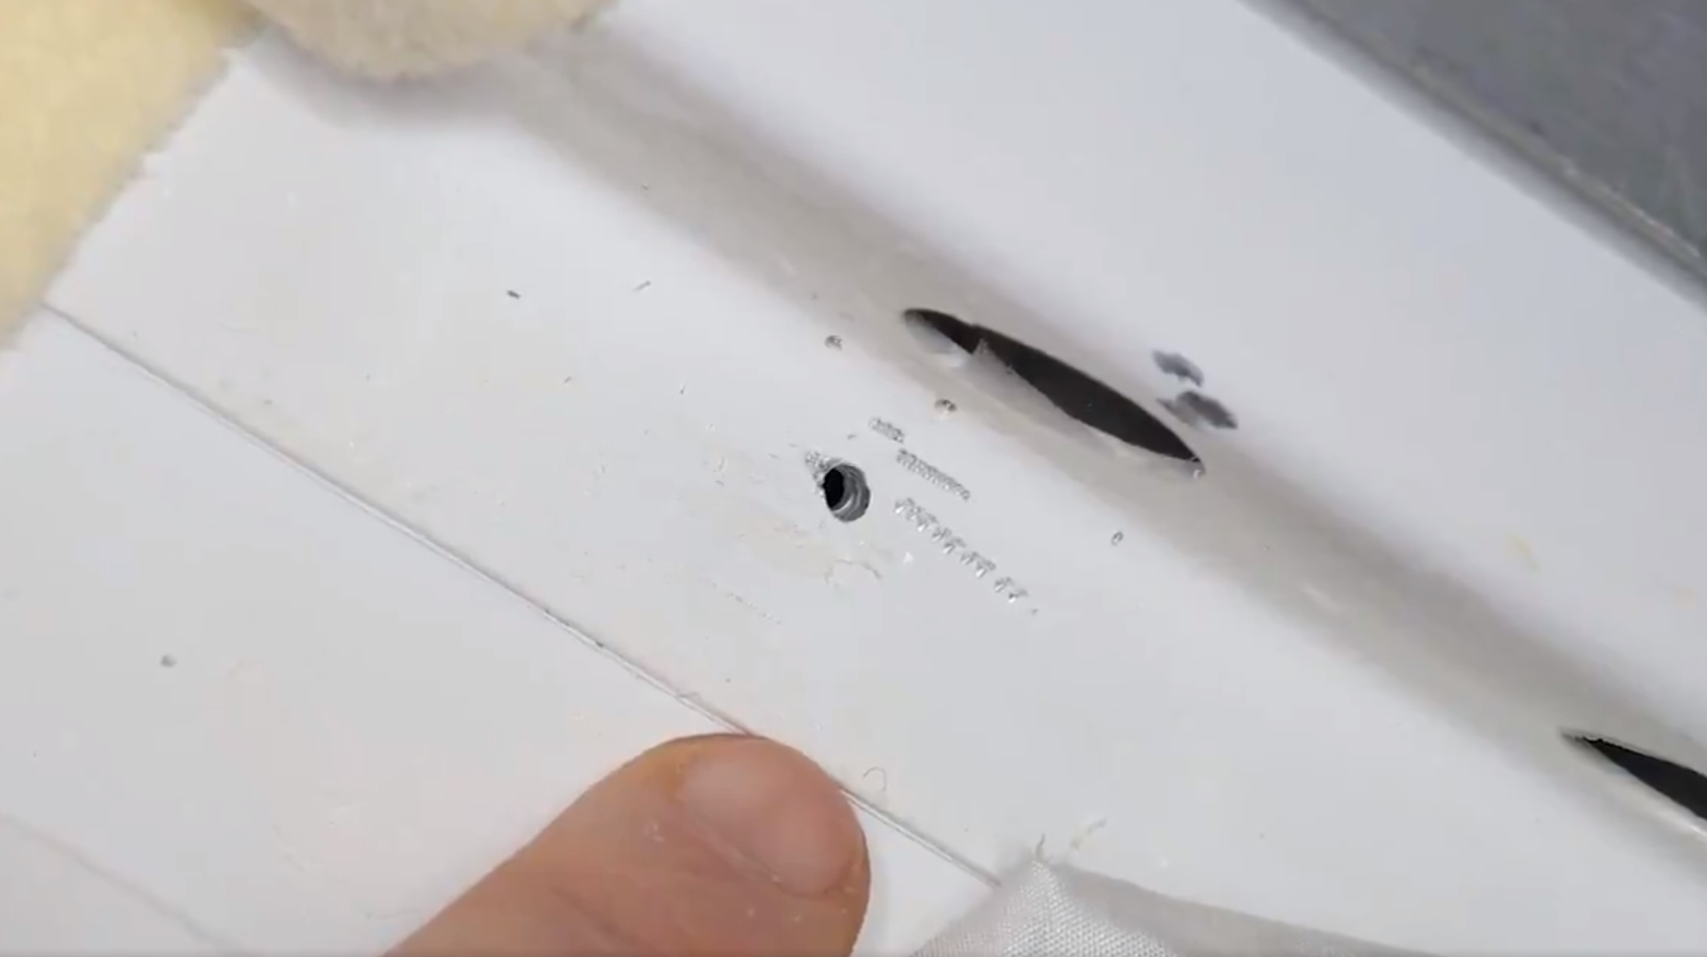 The two-millimeter-wide hole was found on the orbital module of the Soyuz MS-09 spacecraft. Credit: NASA